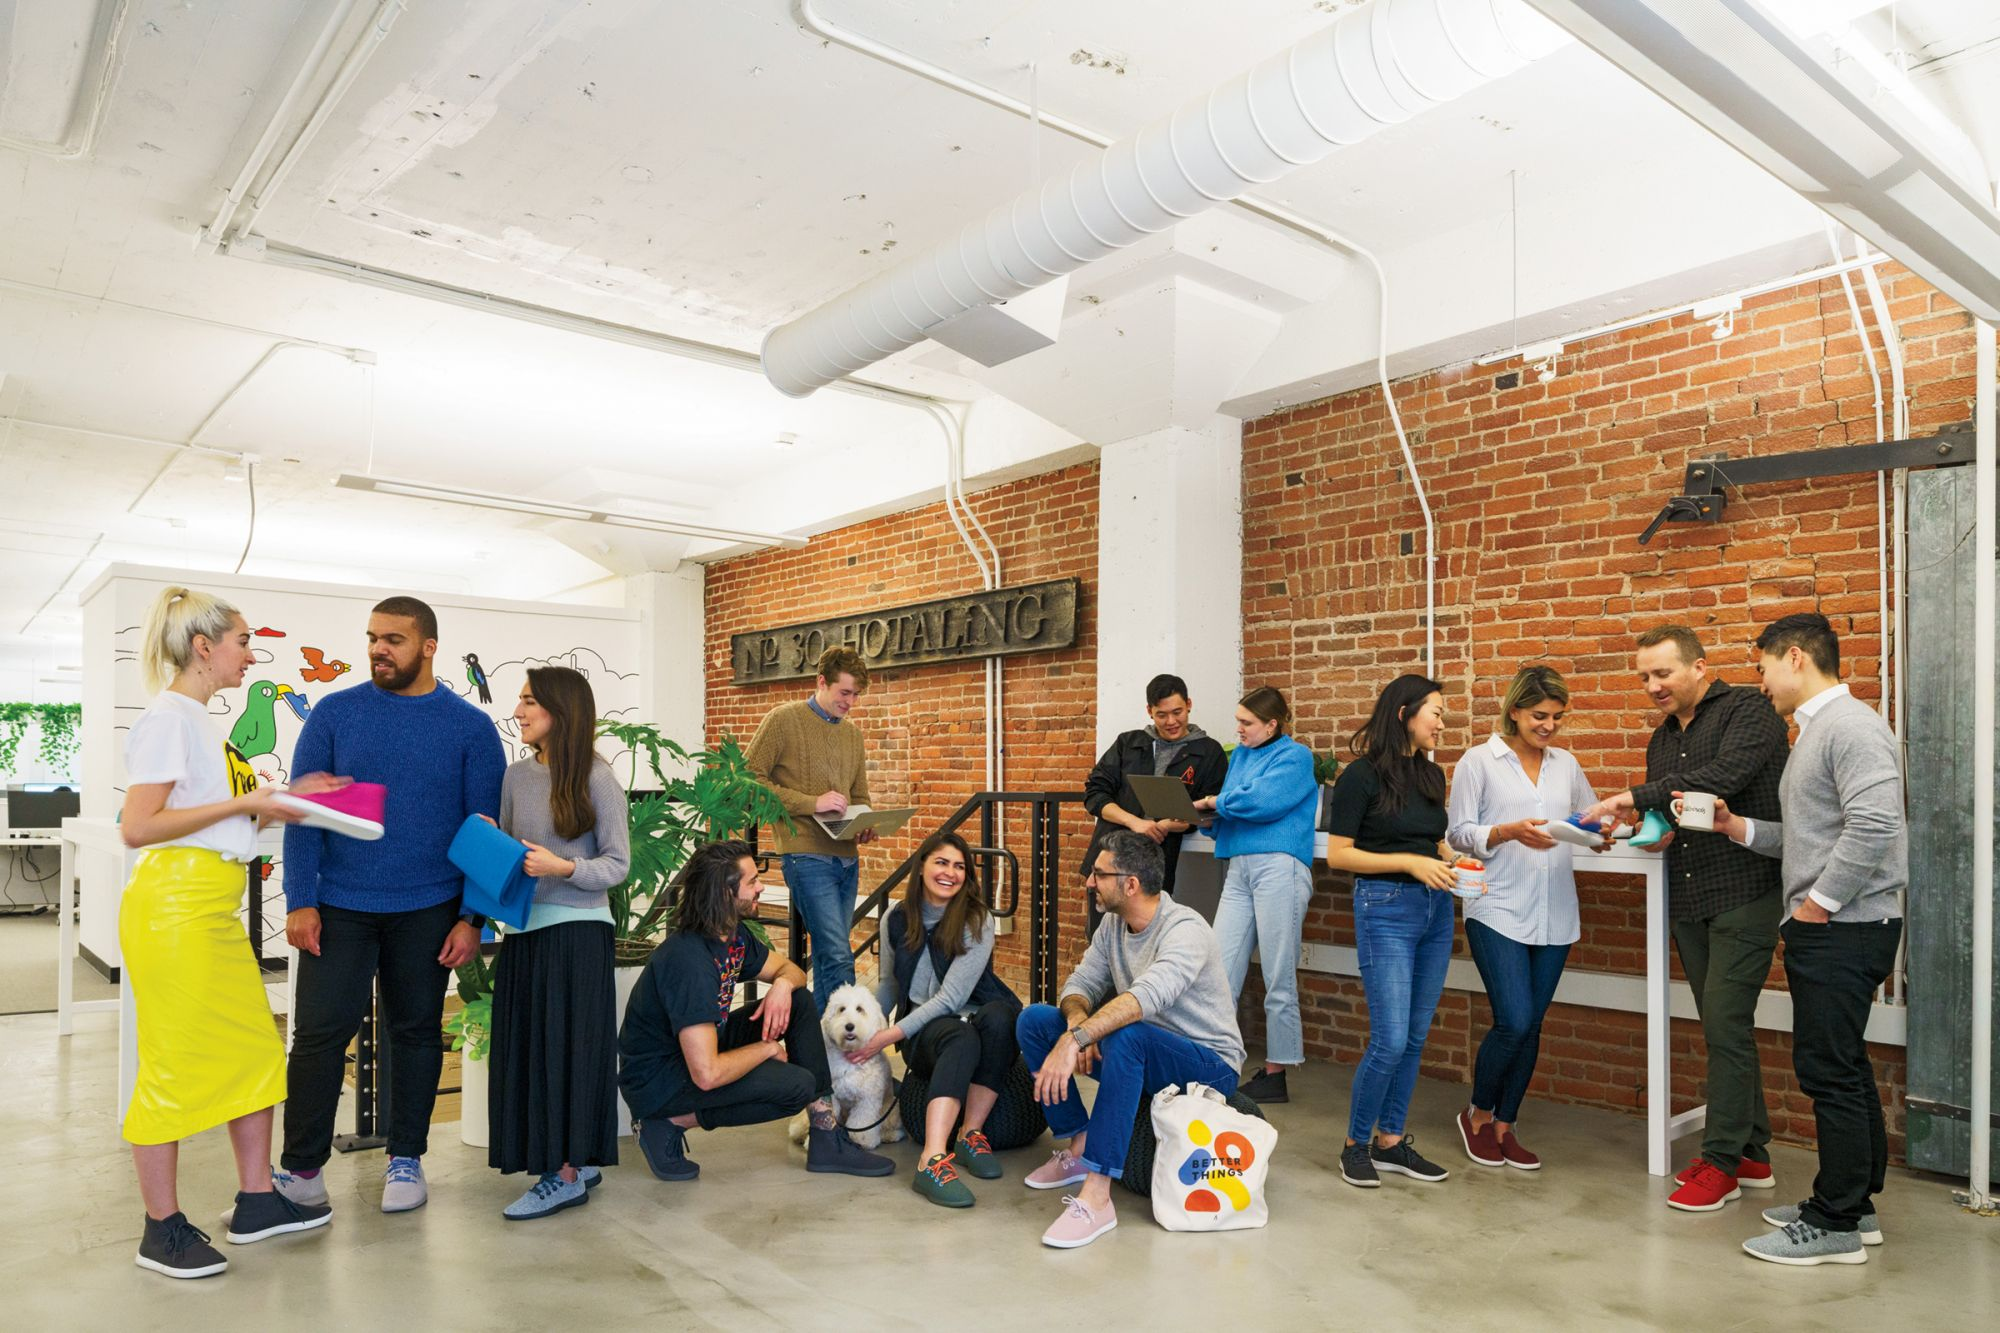 Allbirds' San Francisco HQ Celebrates the Past But Looks to the Future